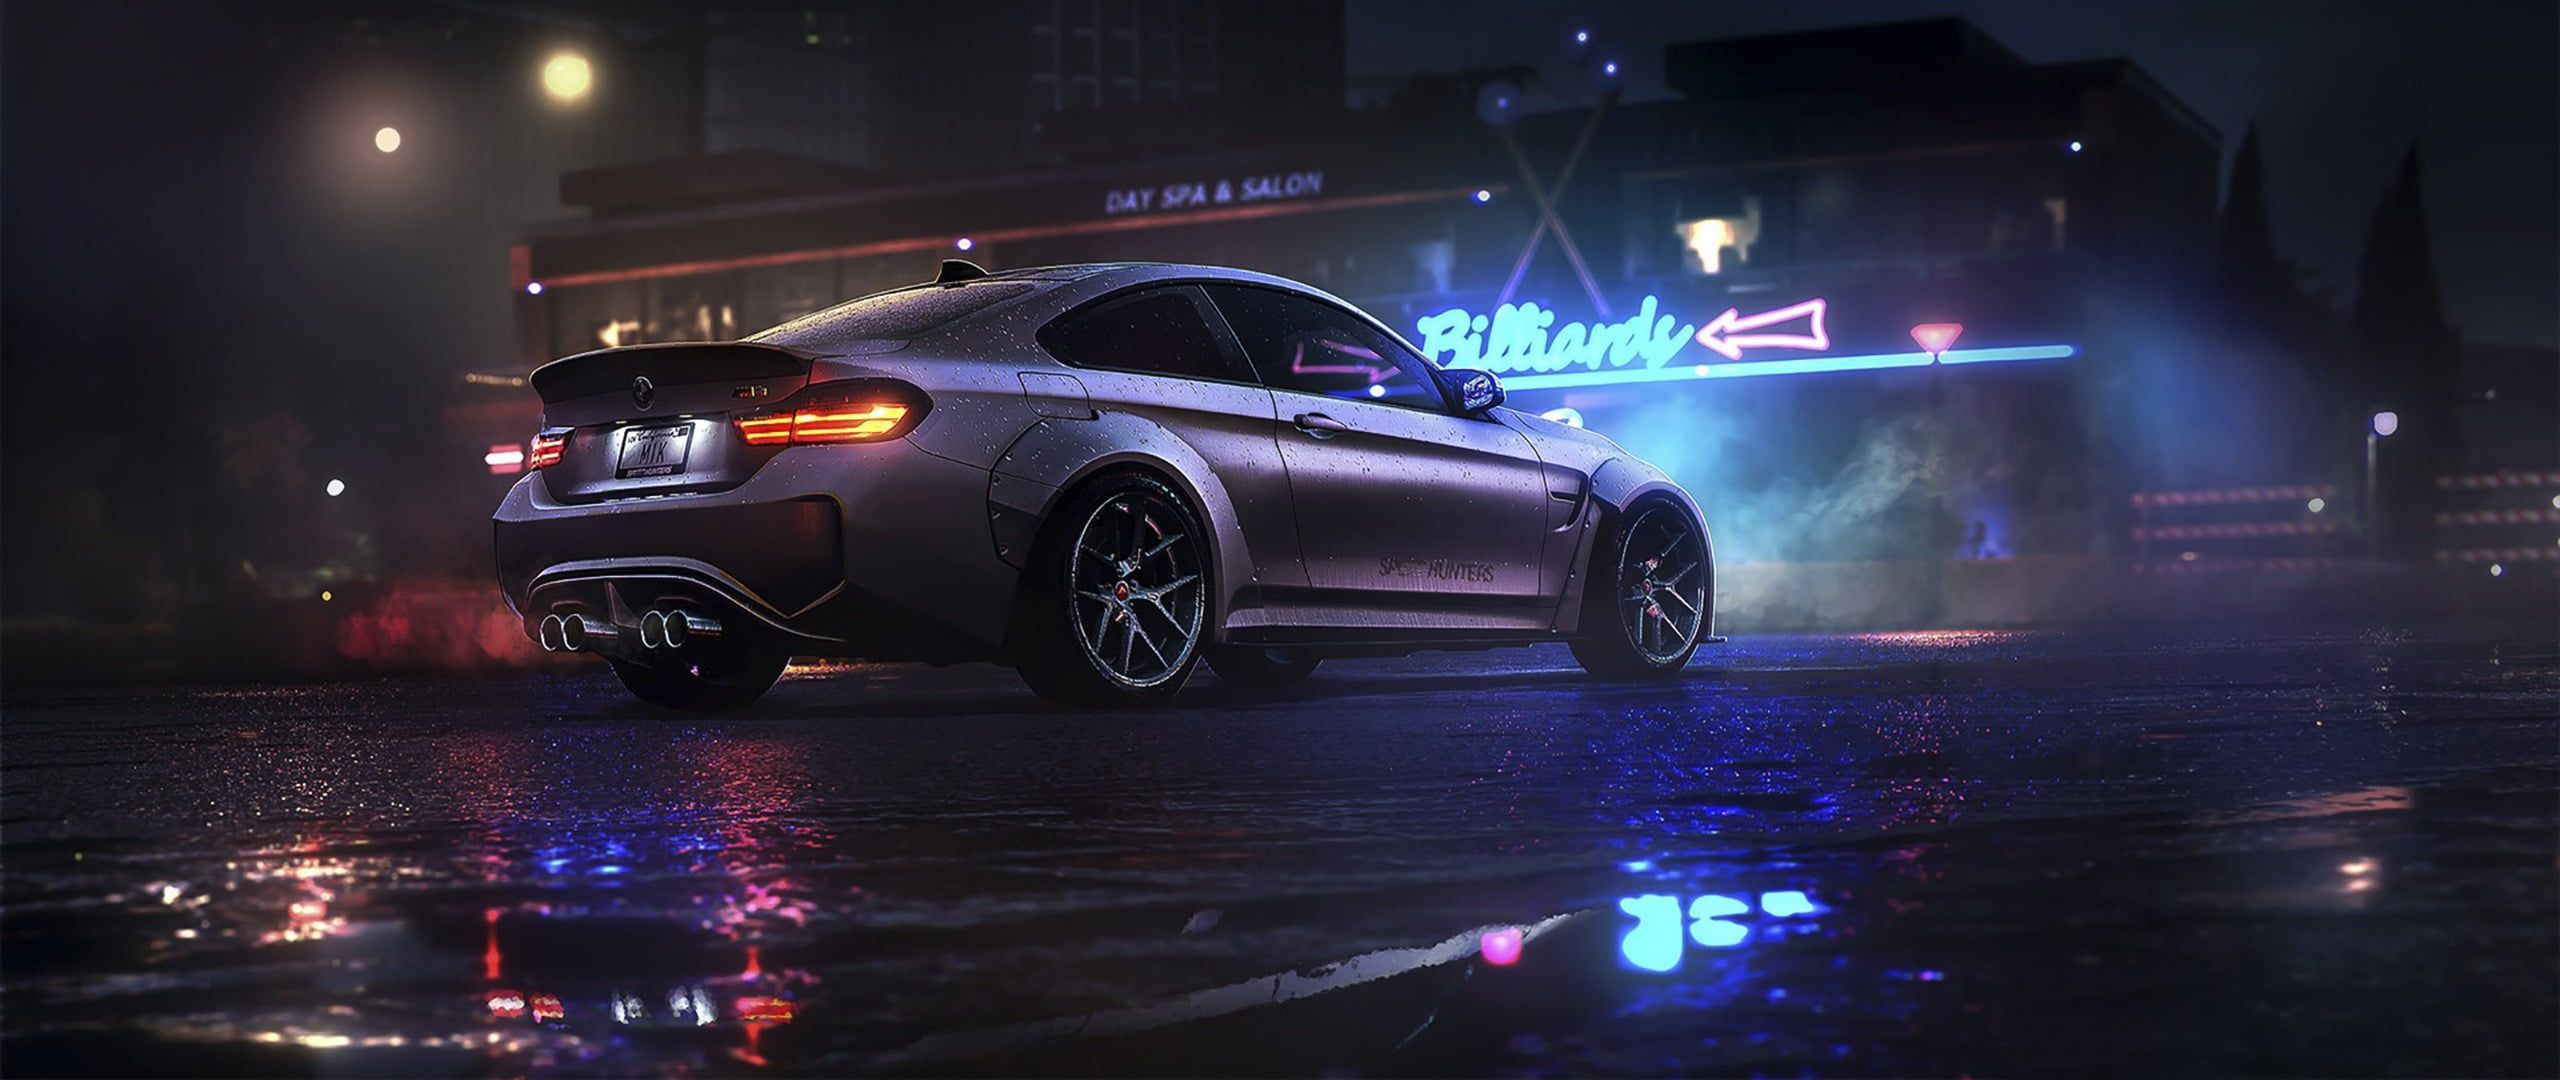 Wallpaper Silver Bmw Coupe Animation Ultra Wide Car Need For Speed Mode Of Transportation Bmw Coupe Bmw Wallpapers Bmw